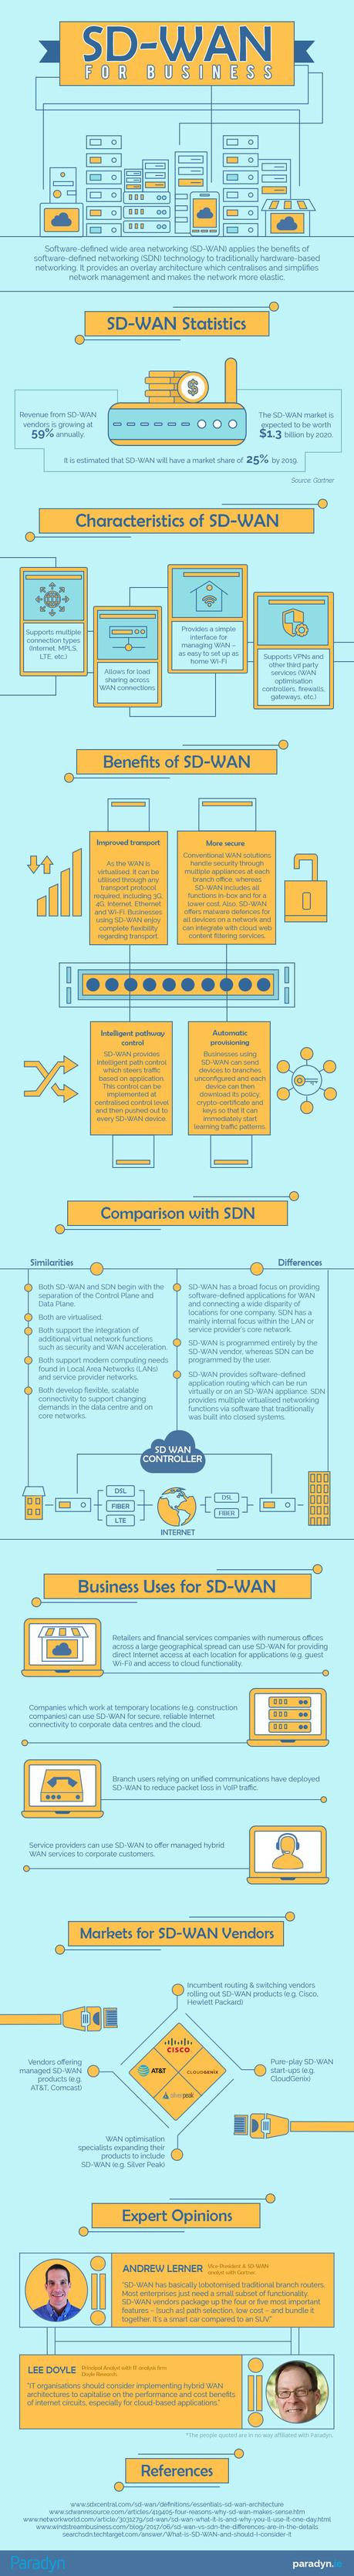 SD-WAN for business